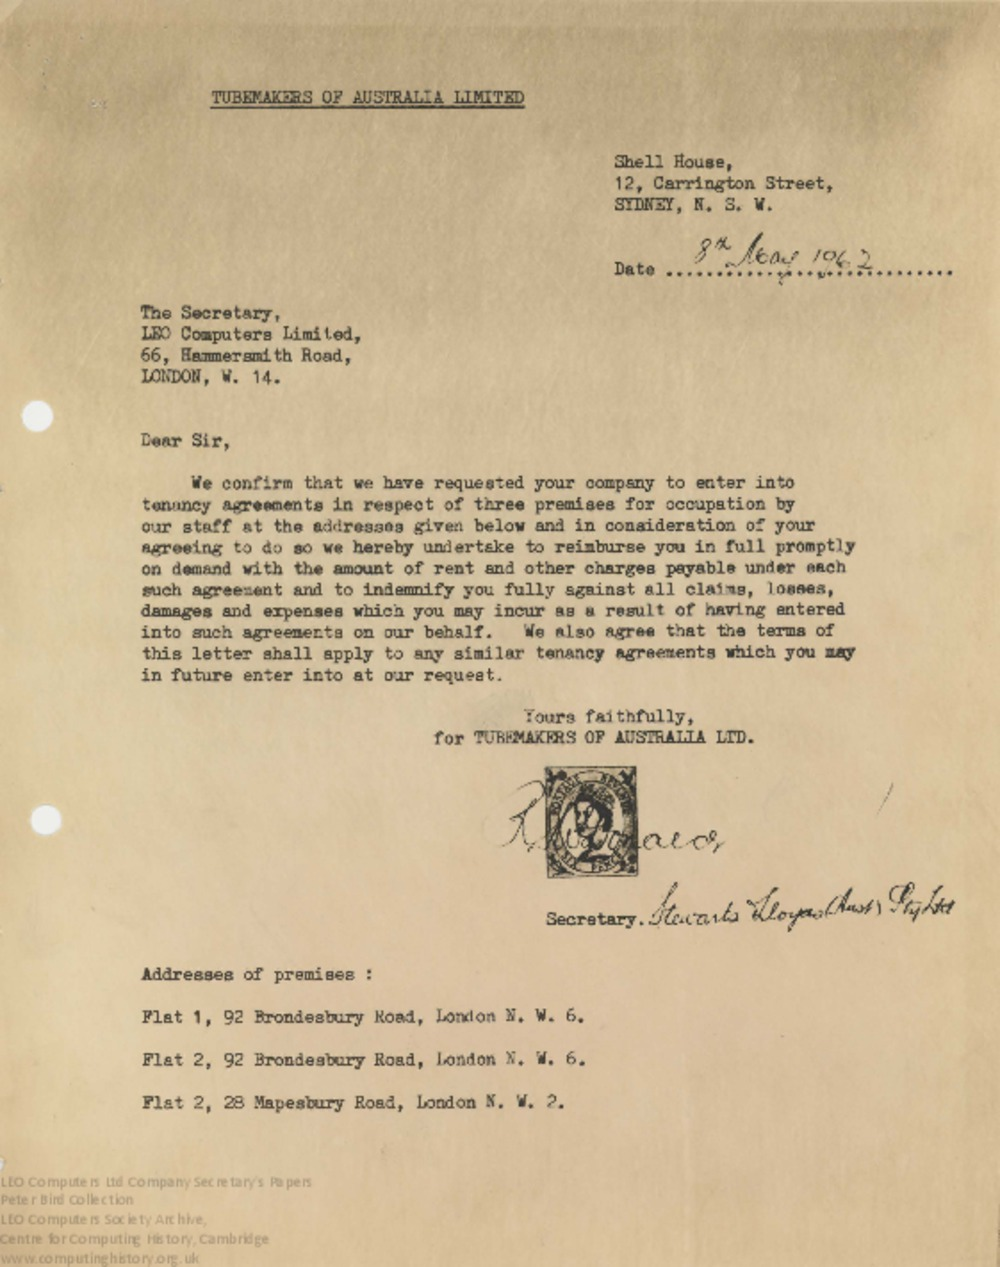 Article: 62860 Tenancy agreements for premises in London, 8-19th May 1962